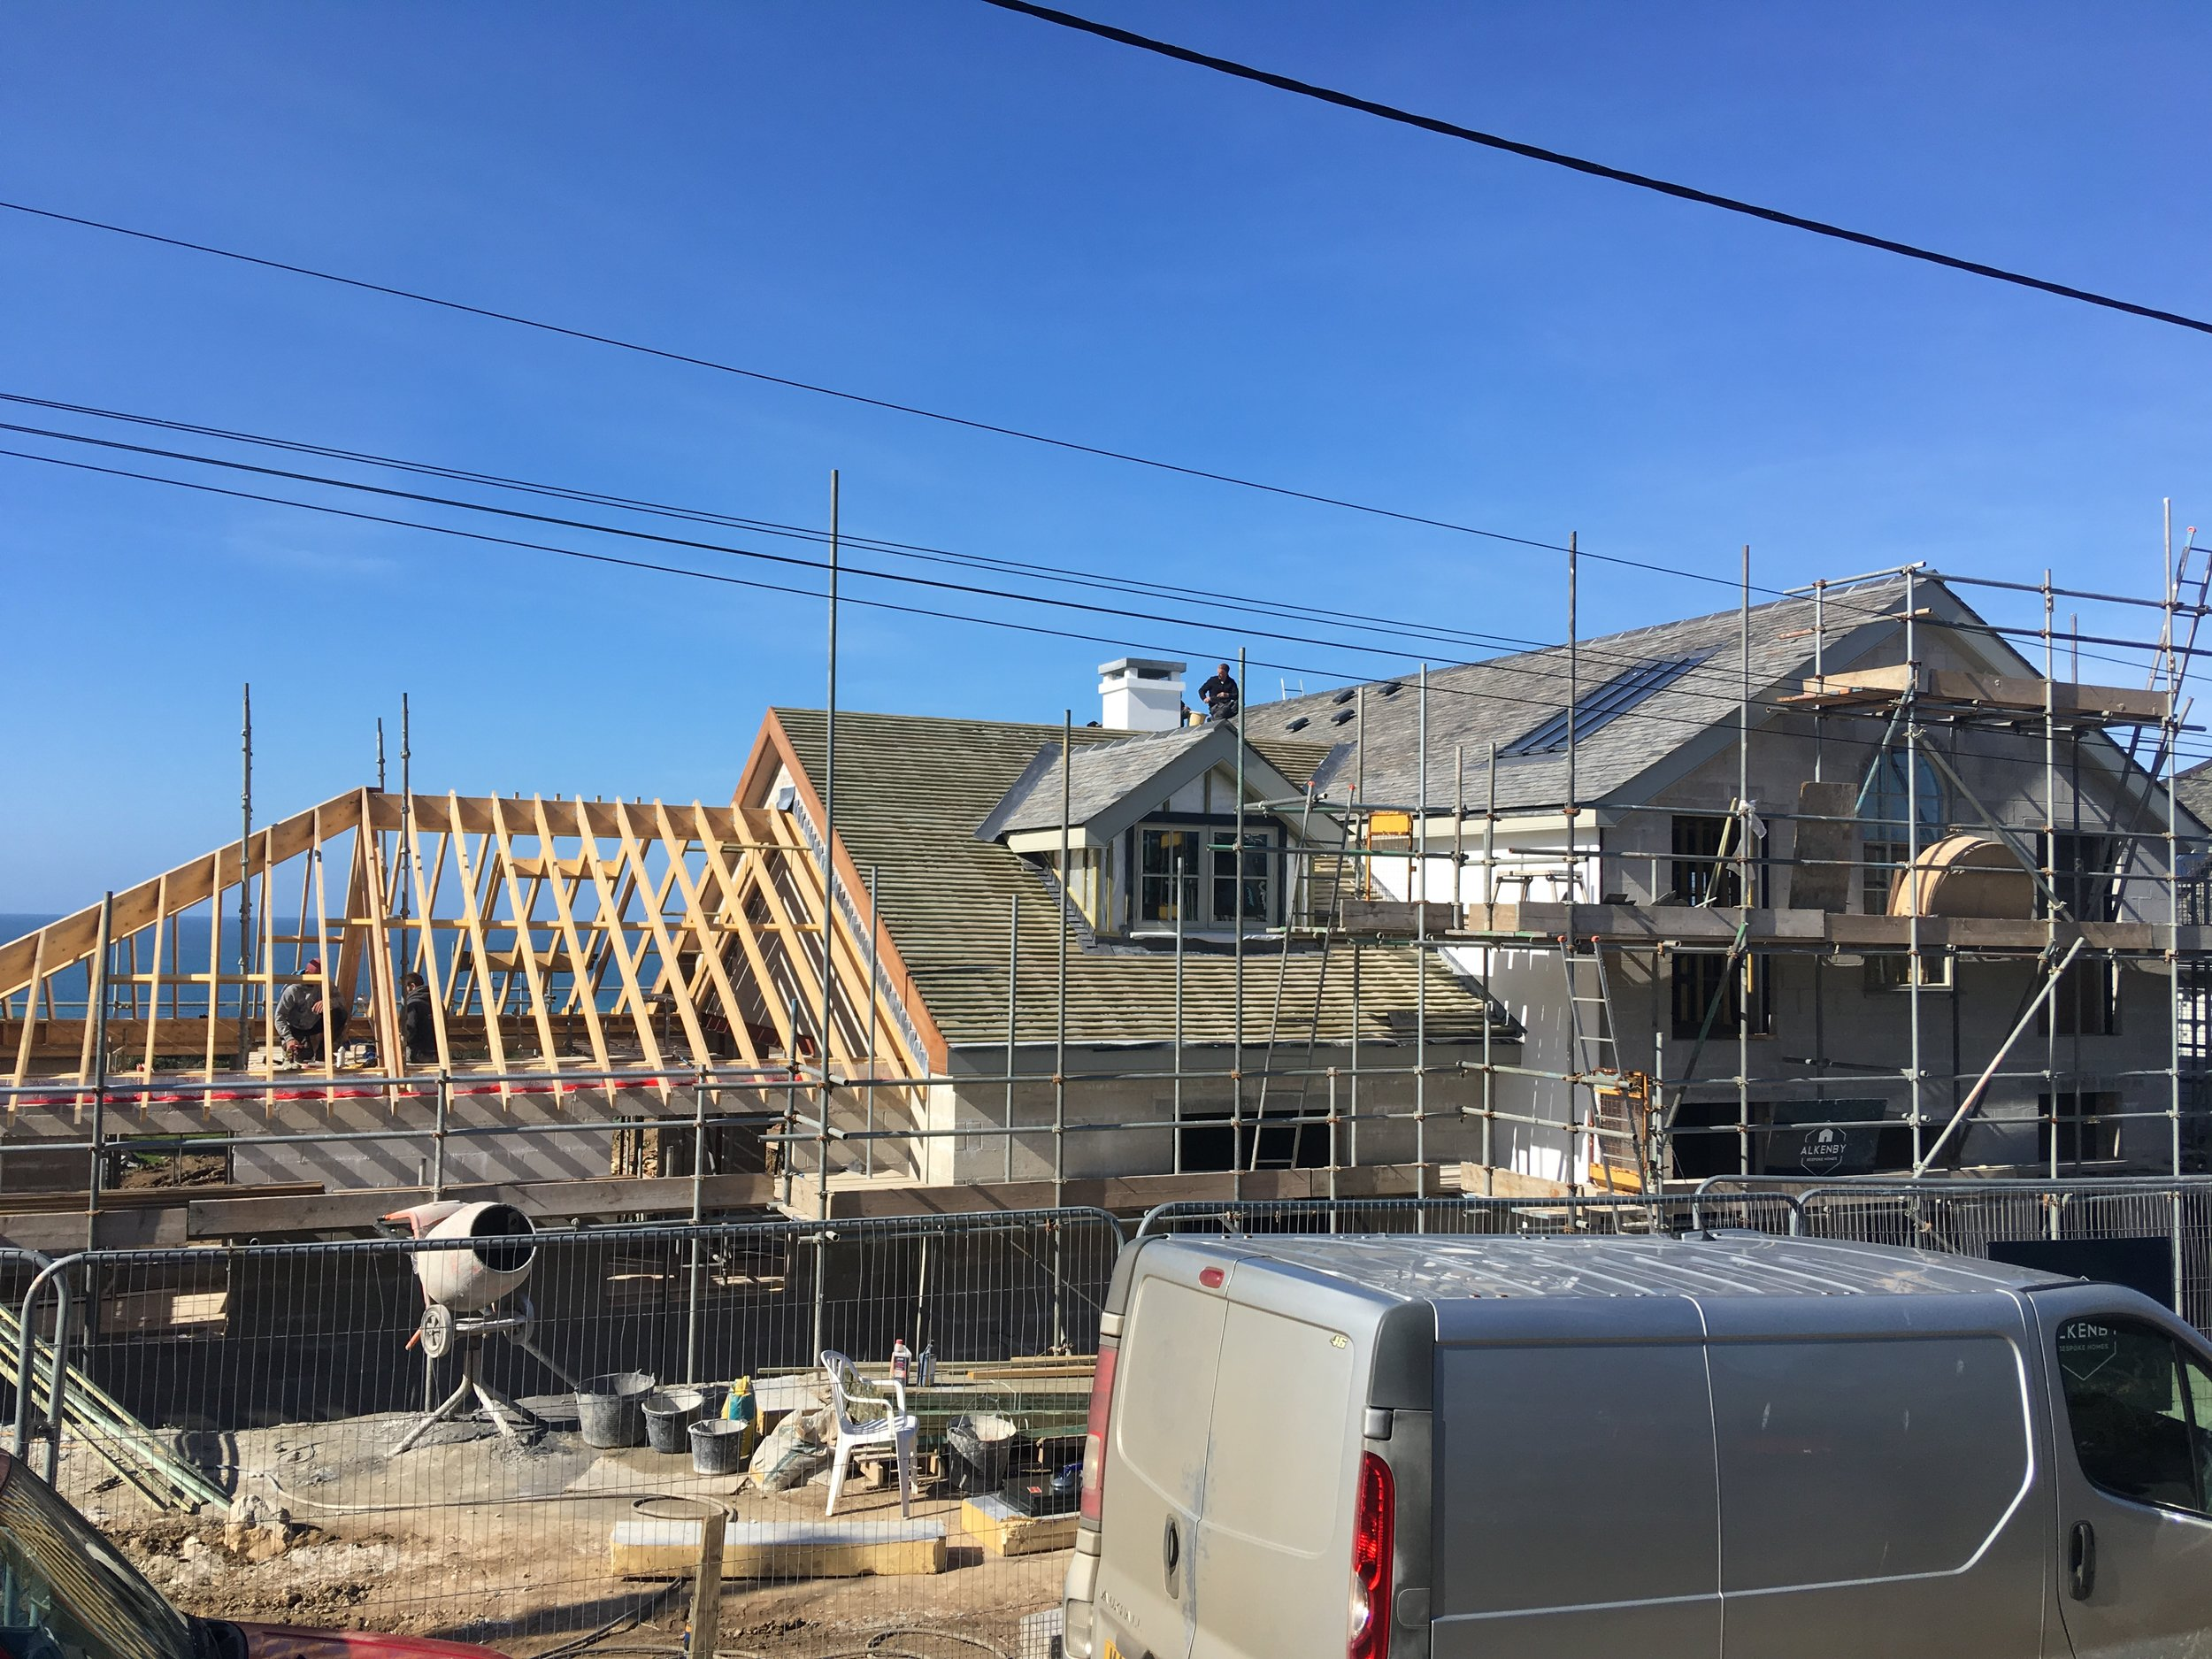 Truss and Tie arrives, final roof going up (March 23rd 2019)